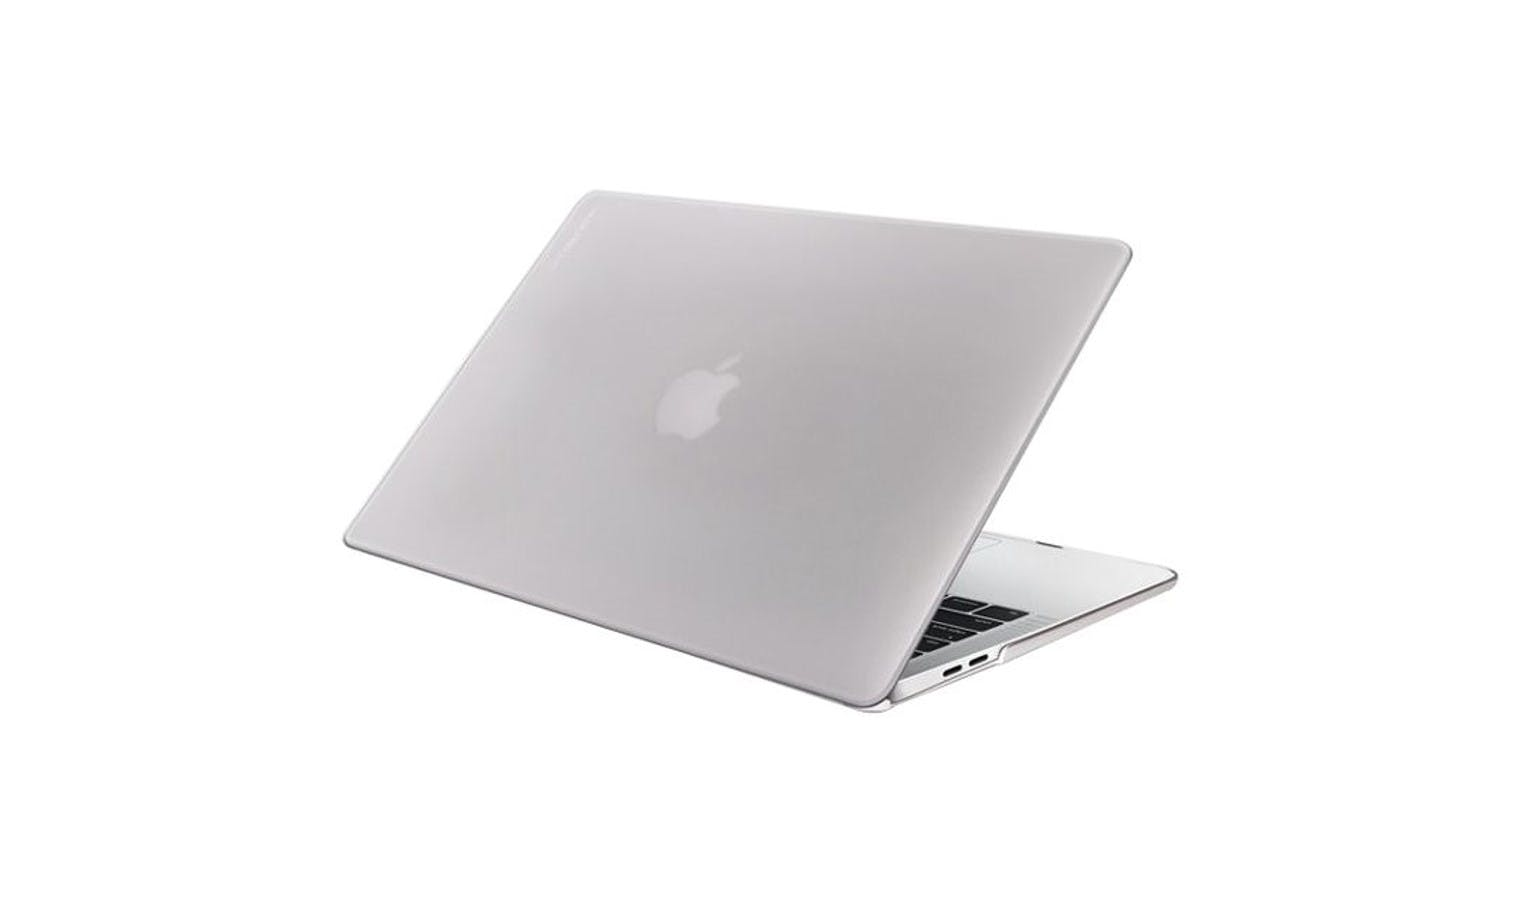 timeless design b56b5 d84ed Uniq Husk Pro Case for Macbook Air 2018 - Clear | Harvey Norman Malaysia